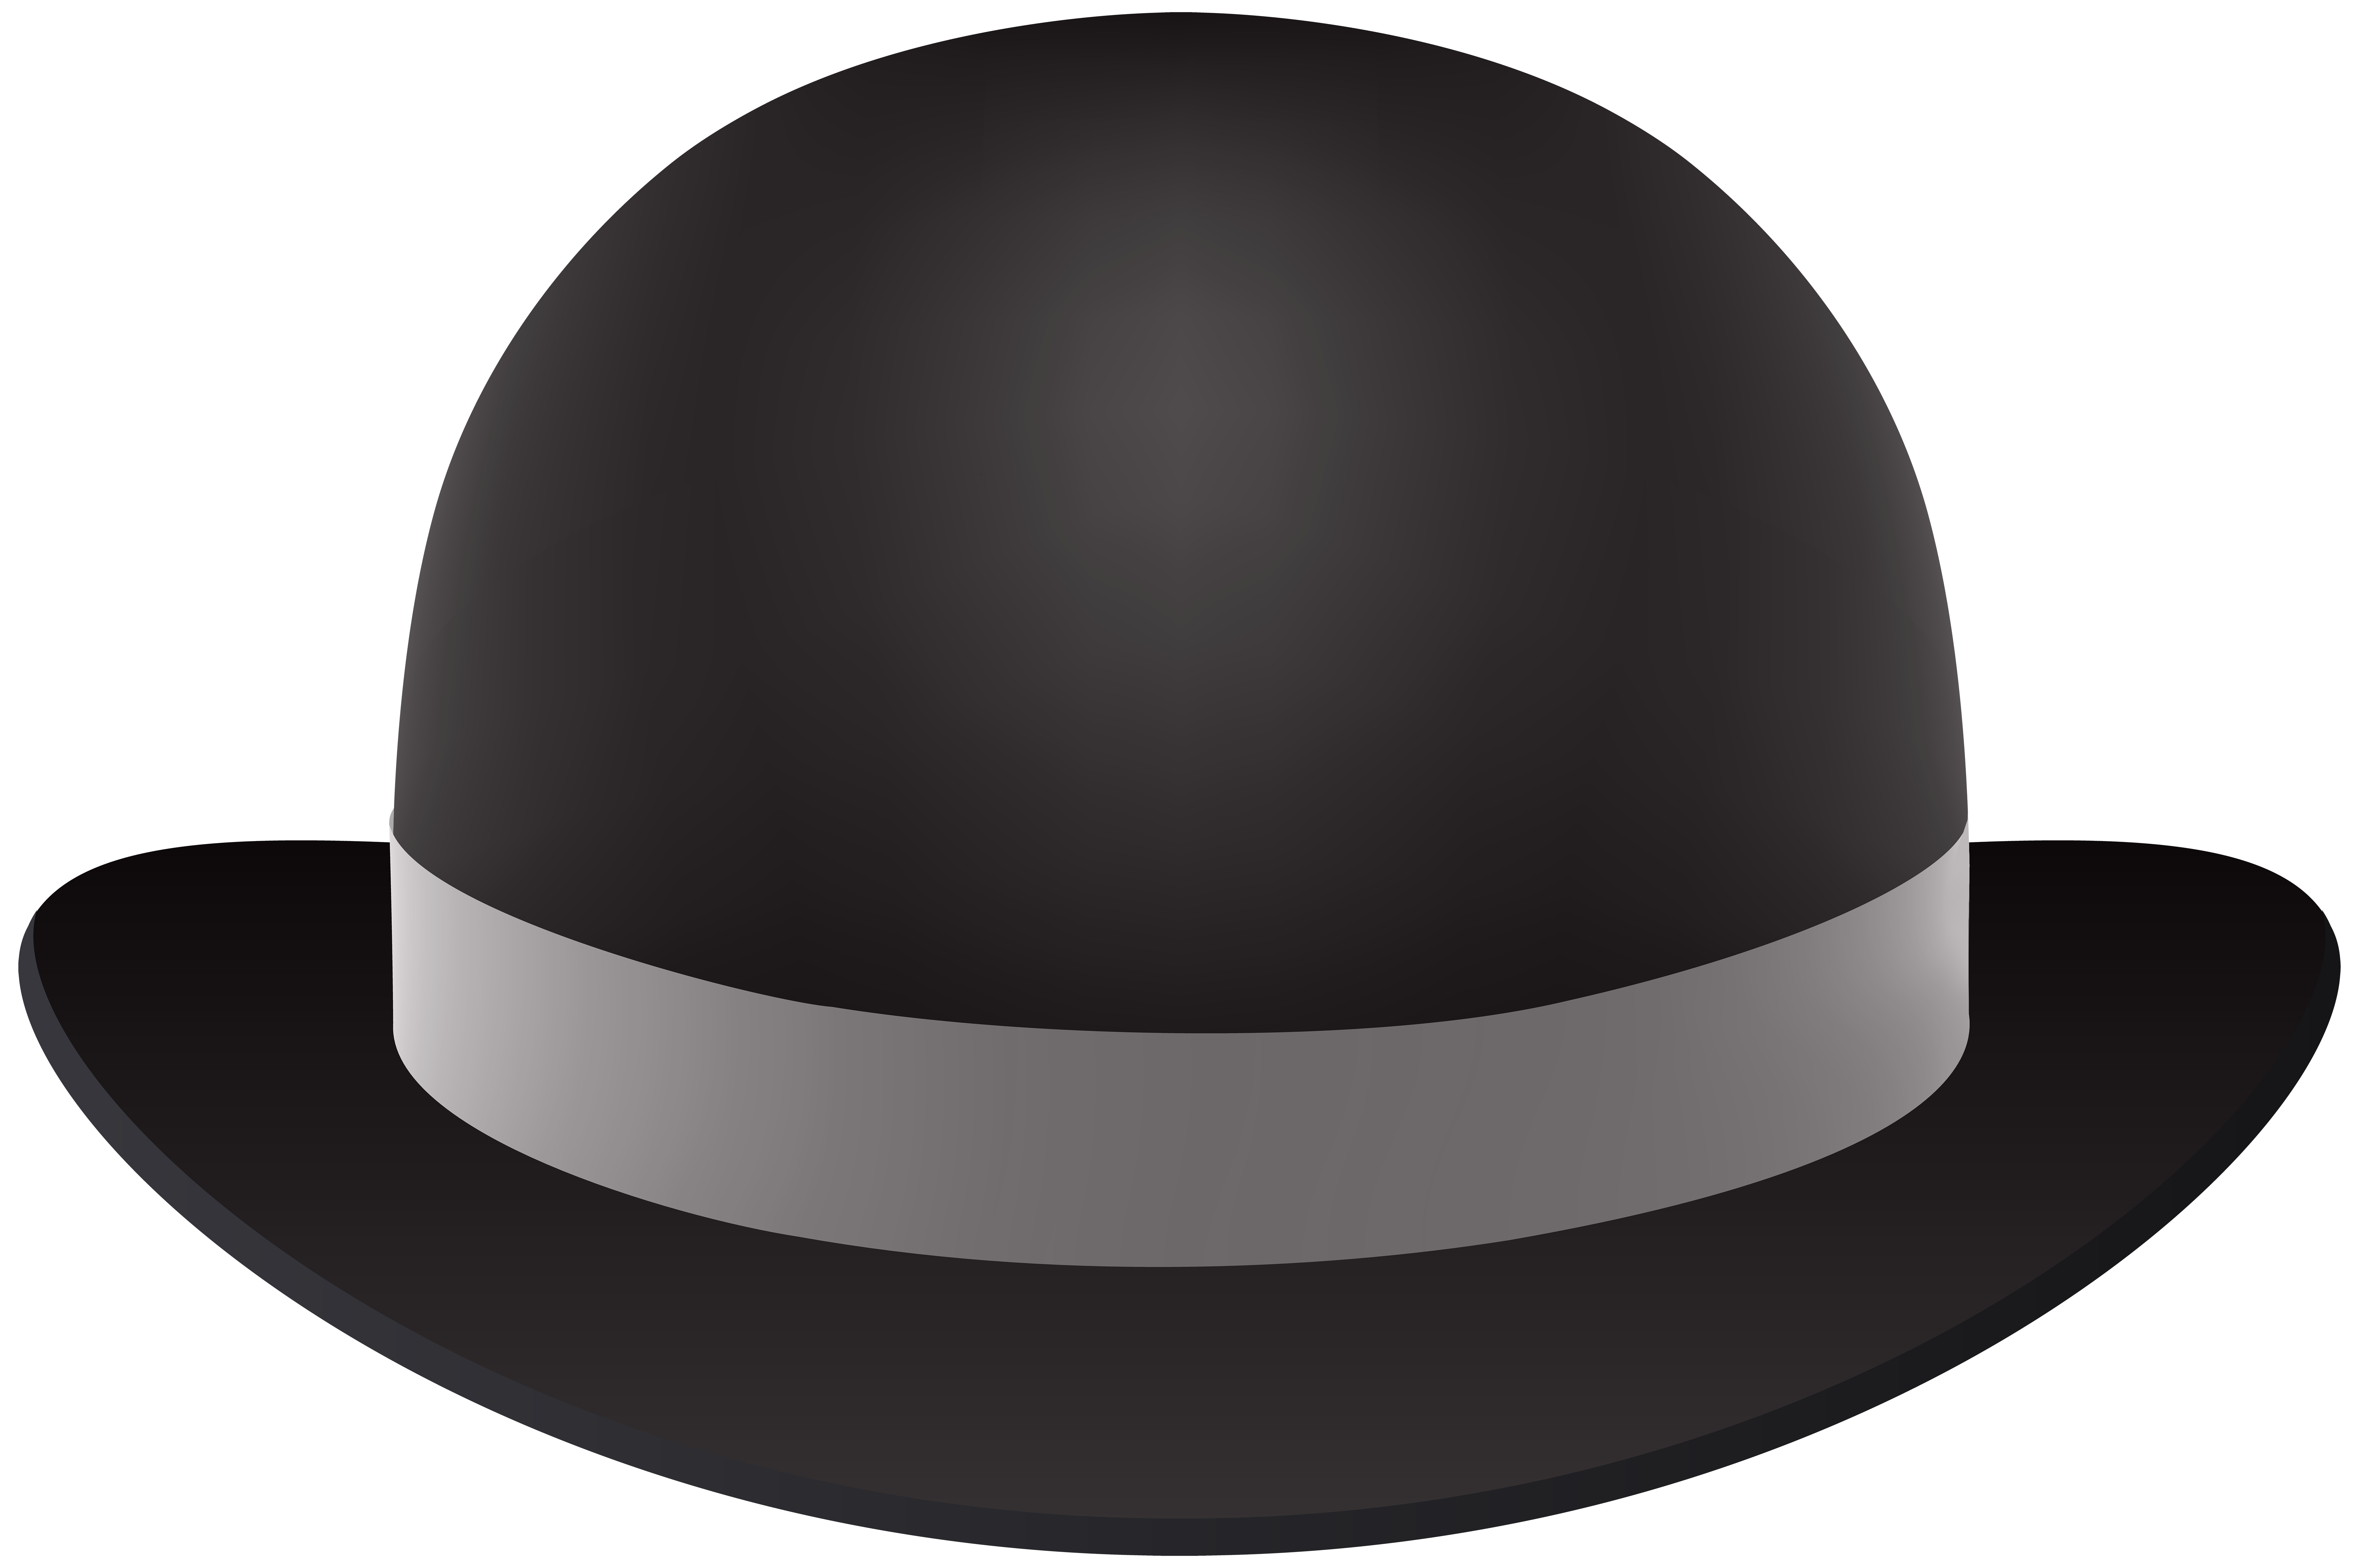 Fedora clipart headwear. Male hat png clip